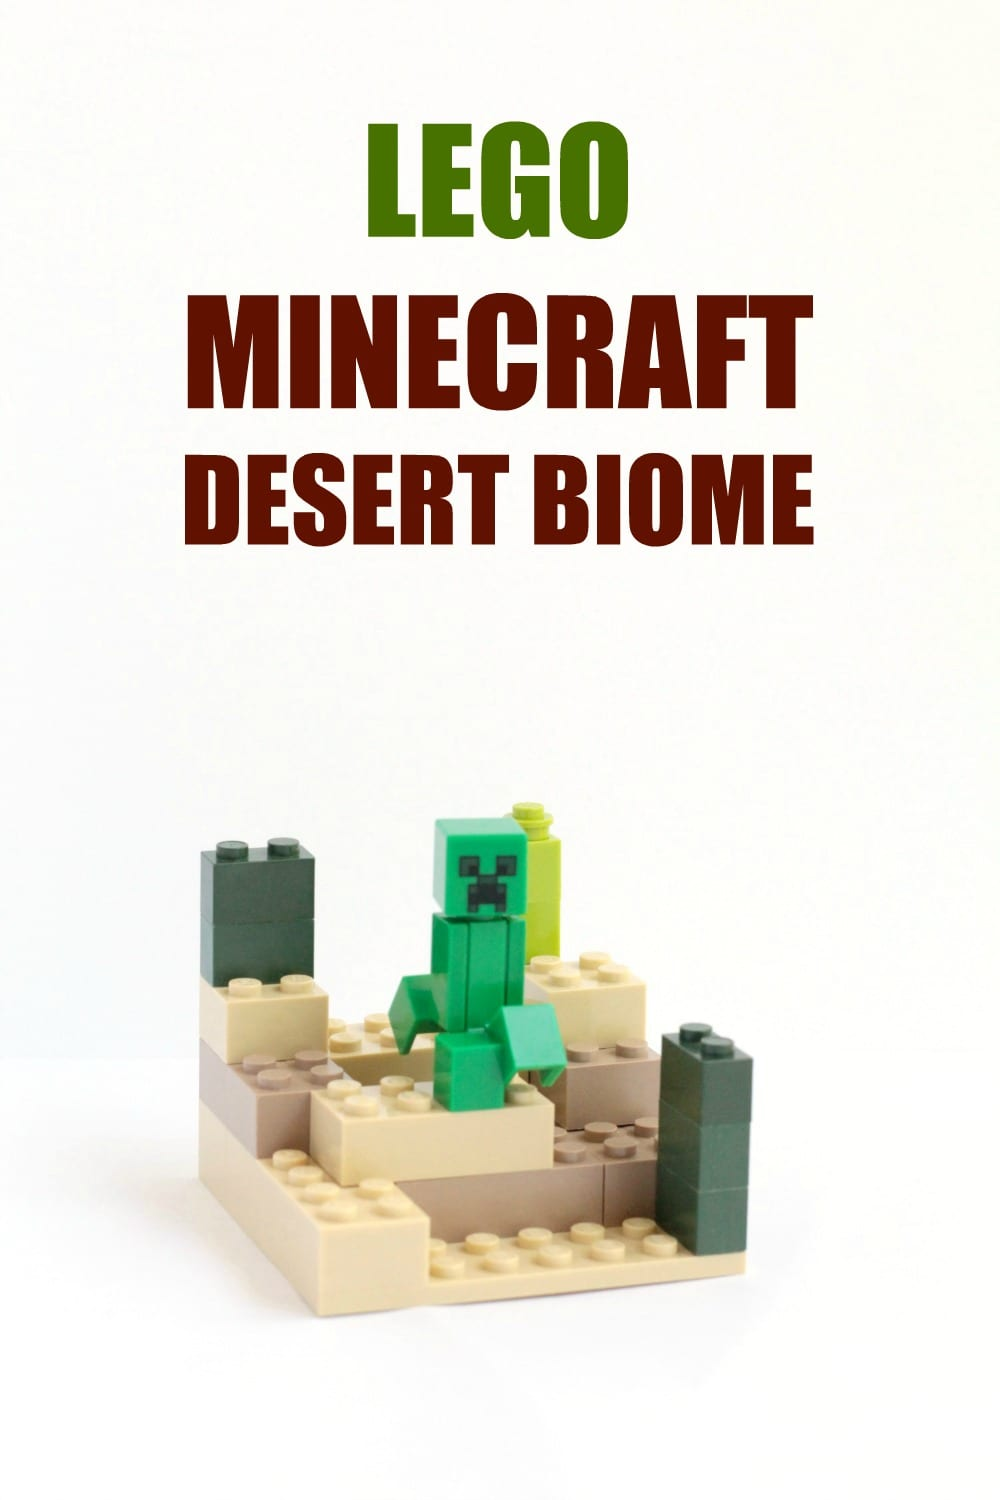 Minecraft-Inspired LEGO Desert Biome